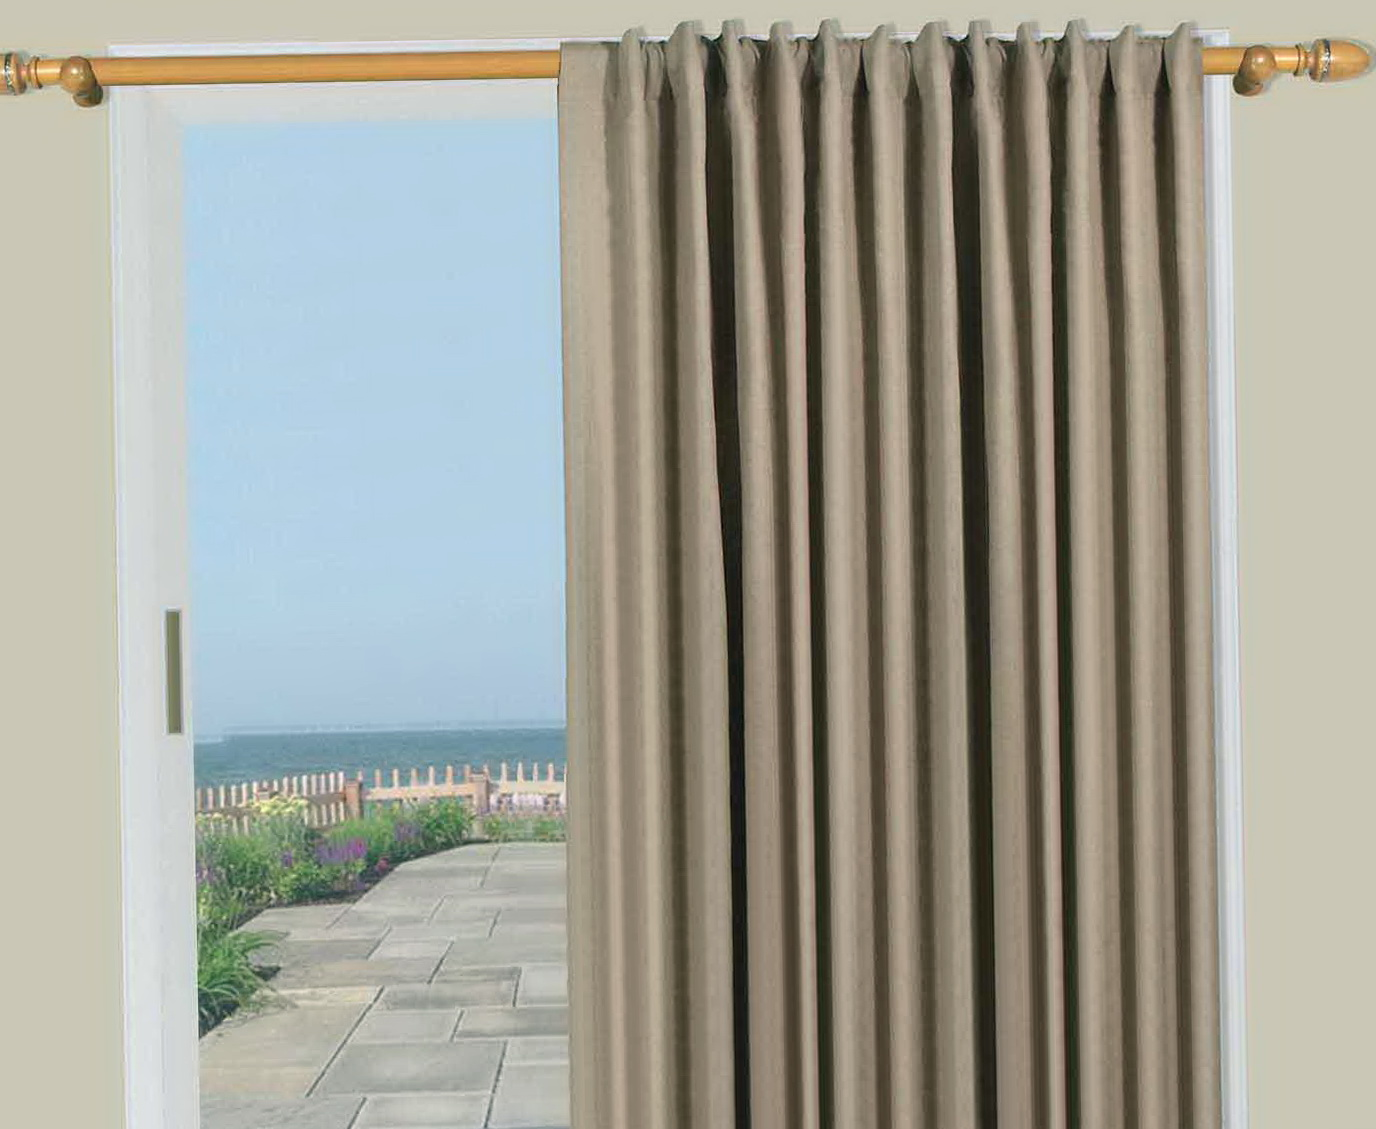 Net curtains for patio doors home design ideas for Net curtains for patio doors